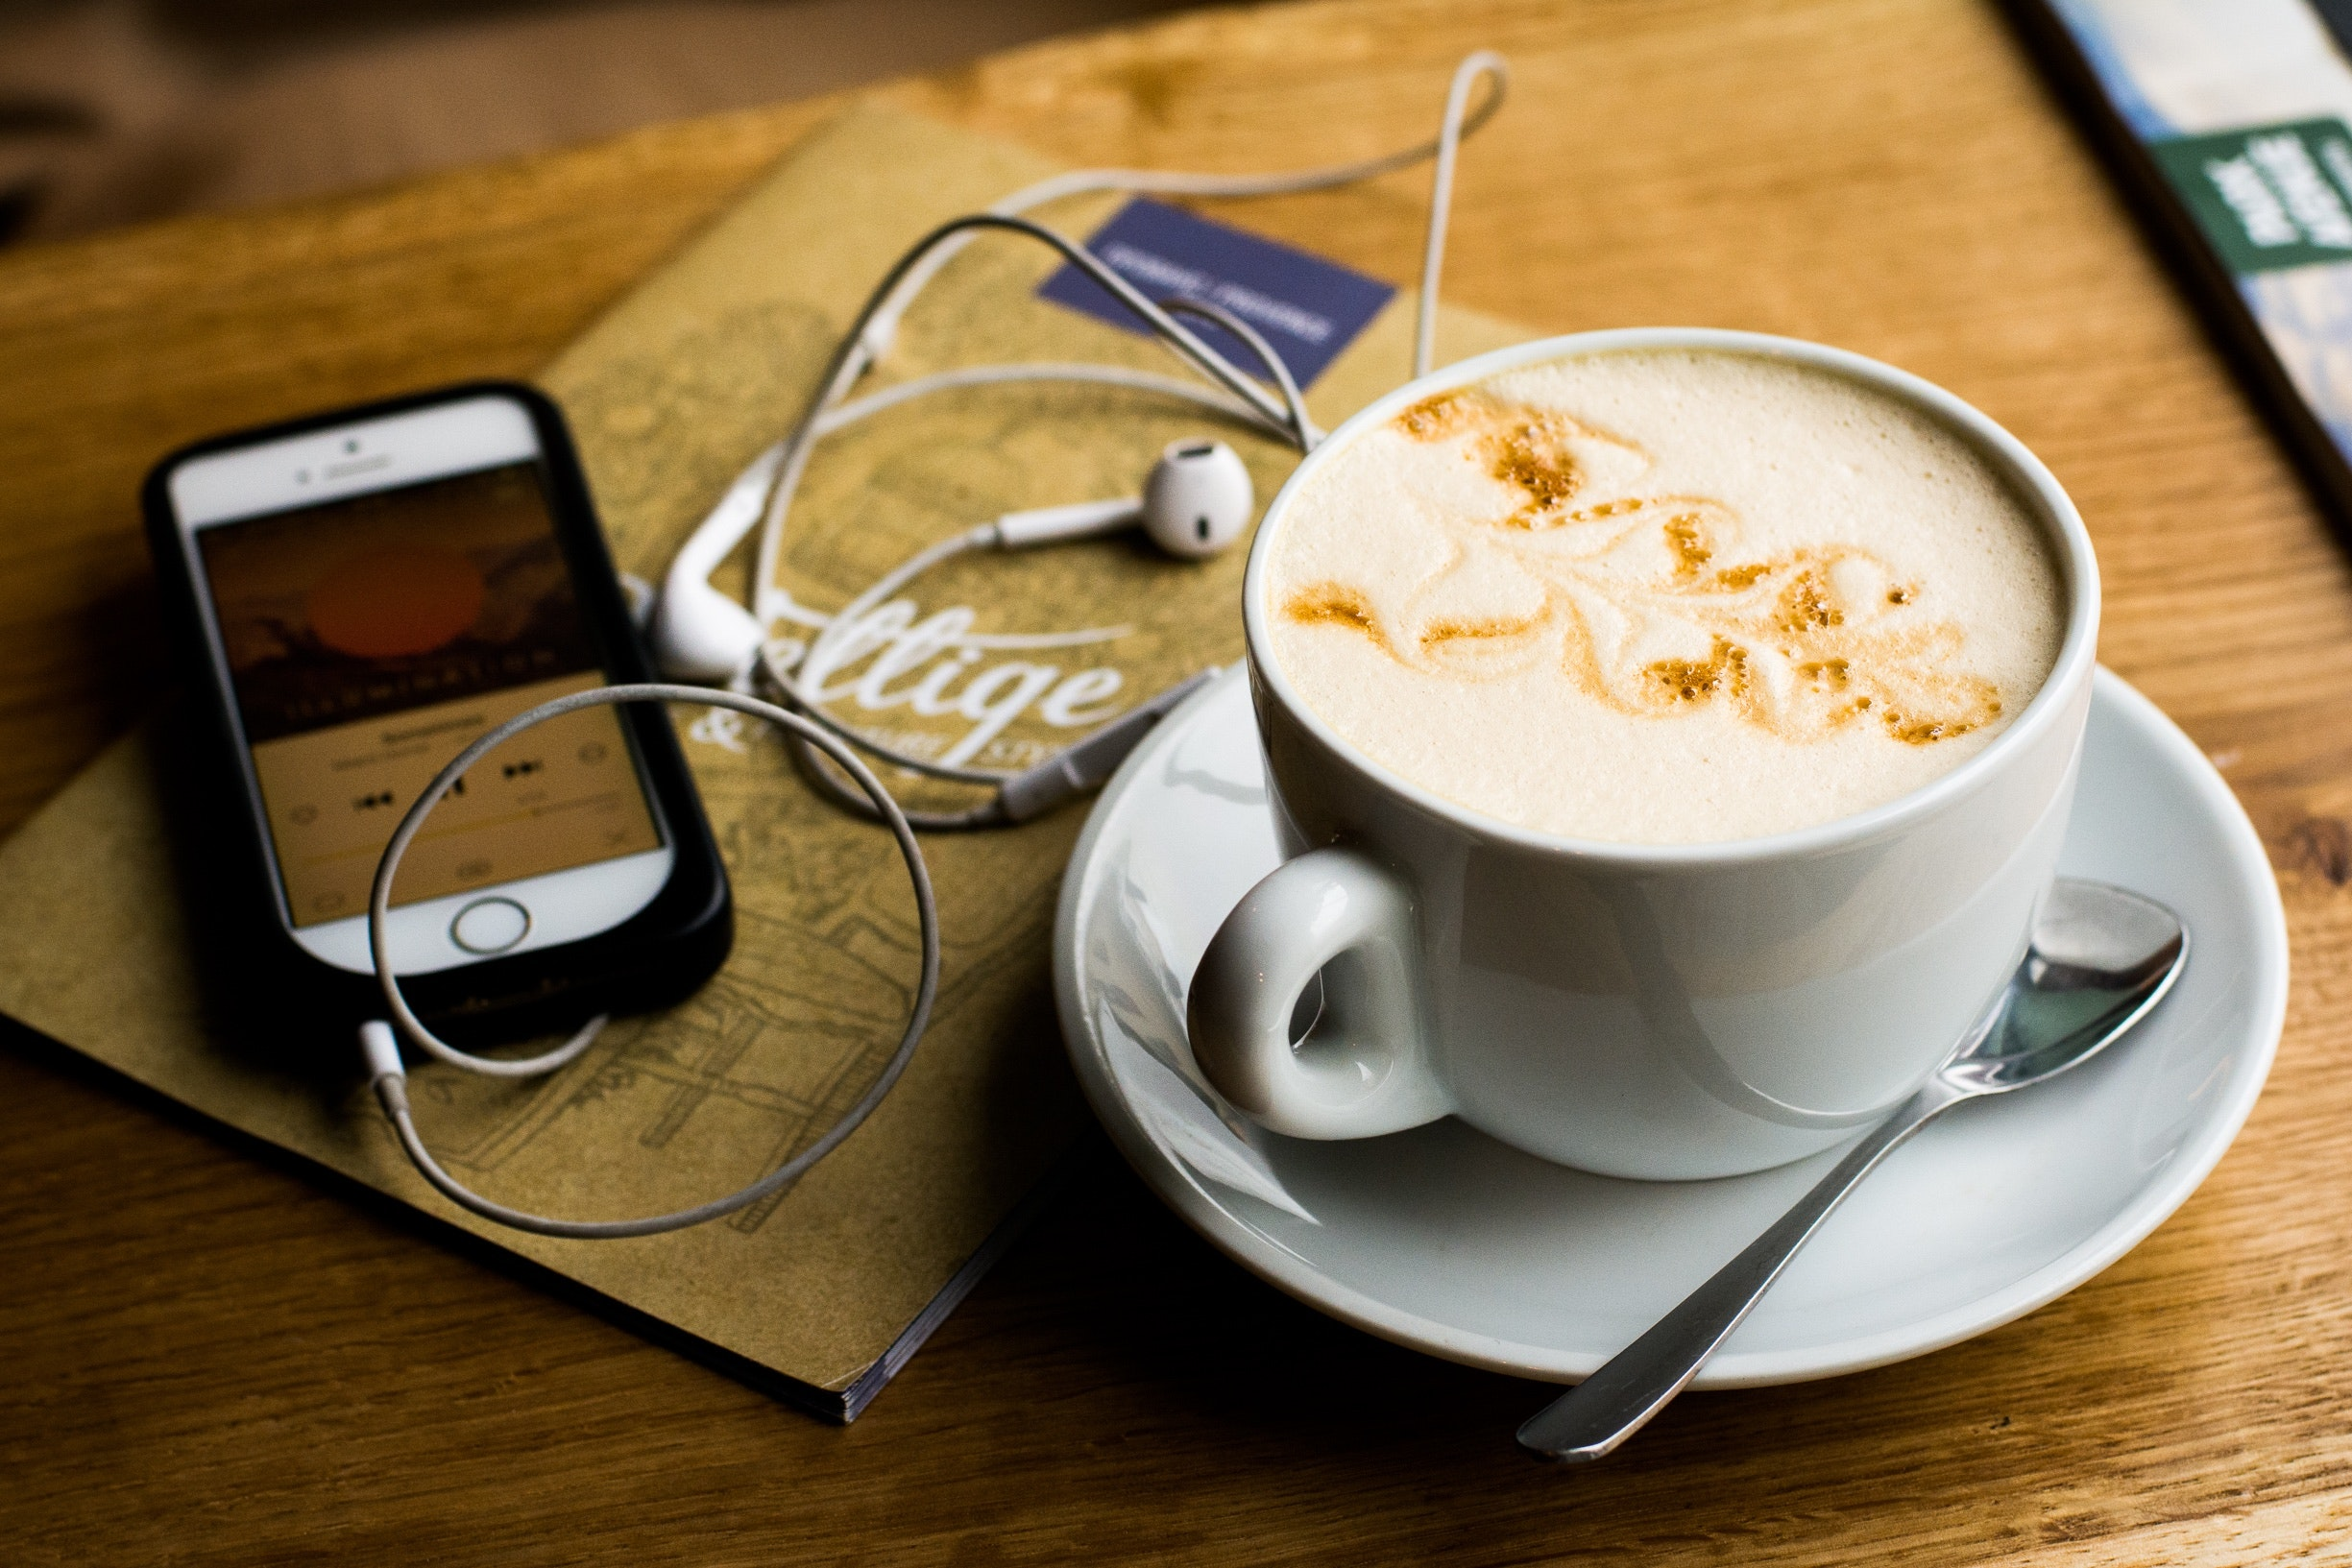 Coffee and podcasts are a great way to start your morning